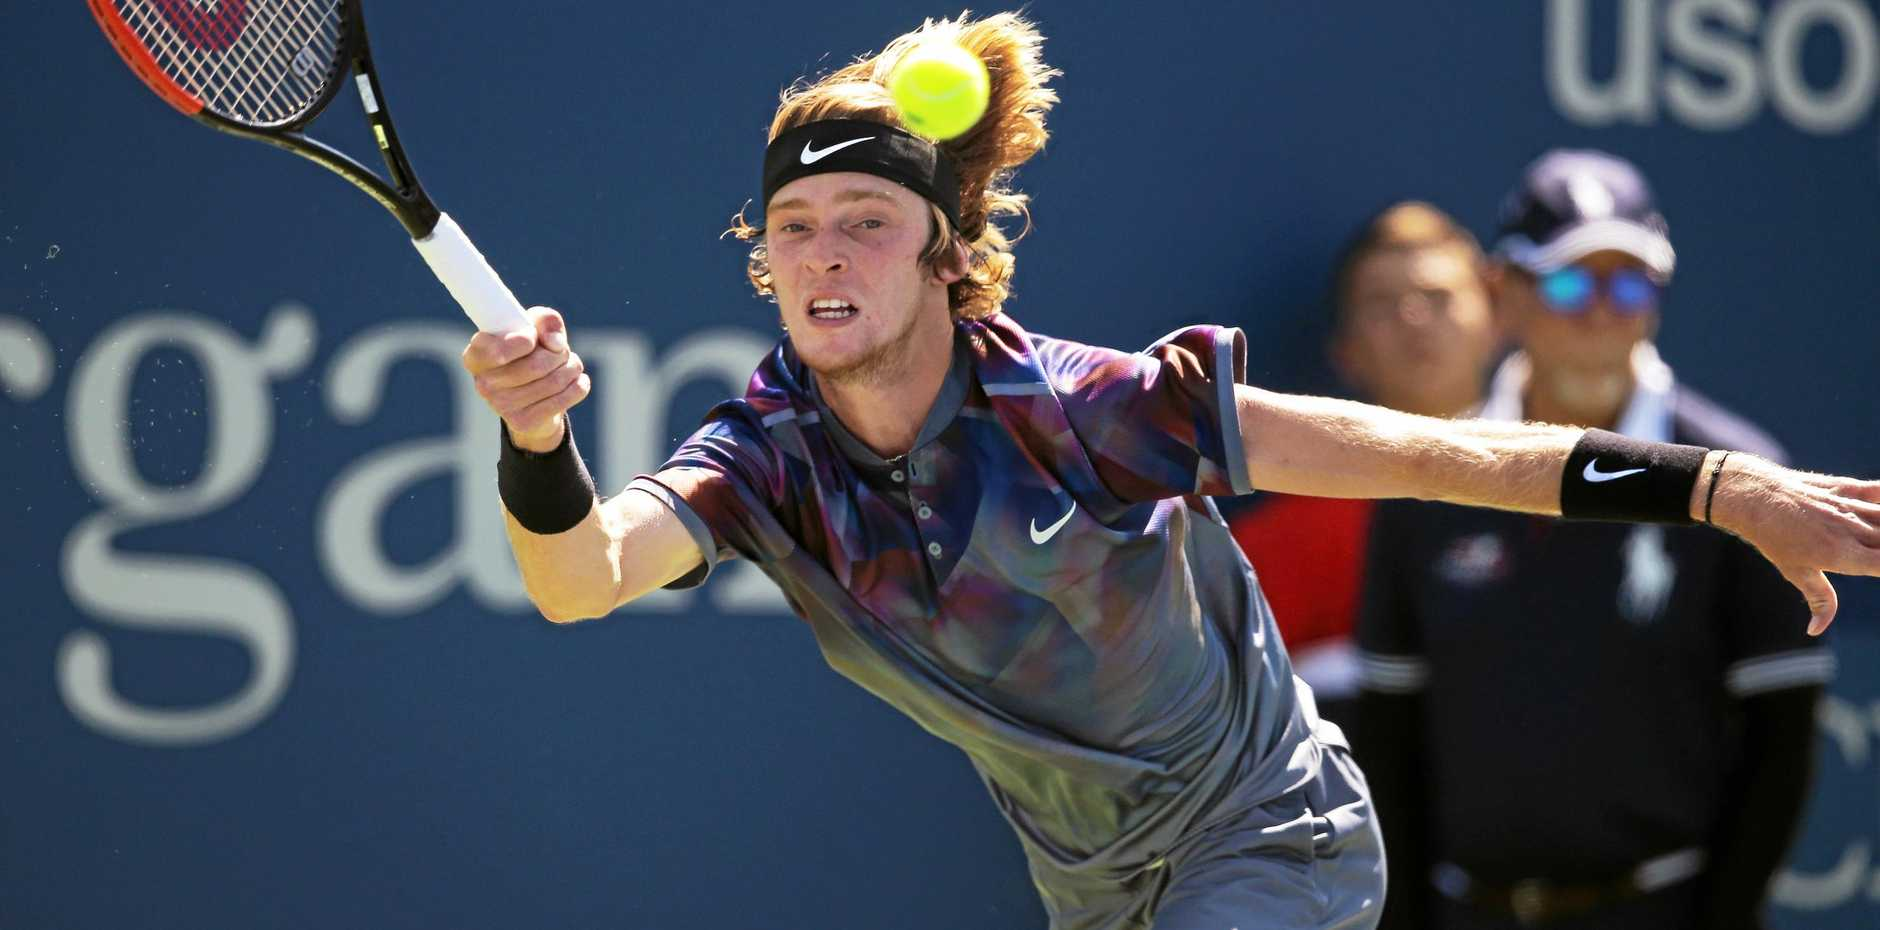 Andrey Rublev returns a shot from David Goffin during the fourth round of the U.S. Open